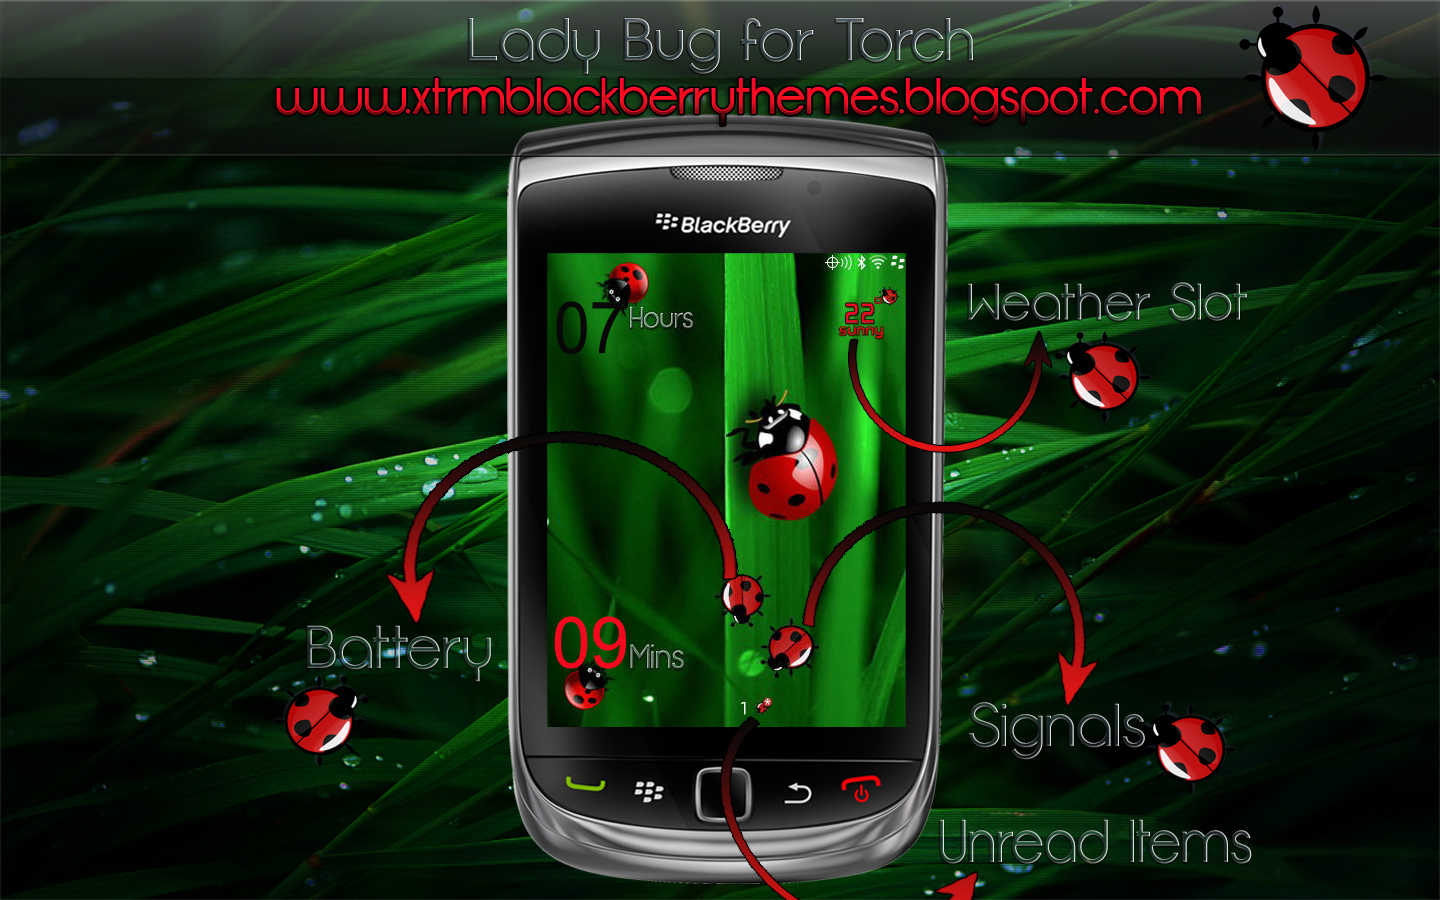 Lady Bug Premium for Torch 9800